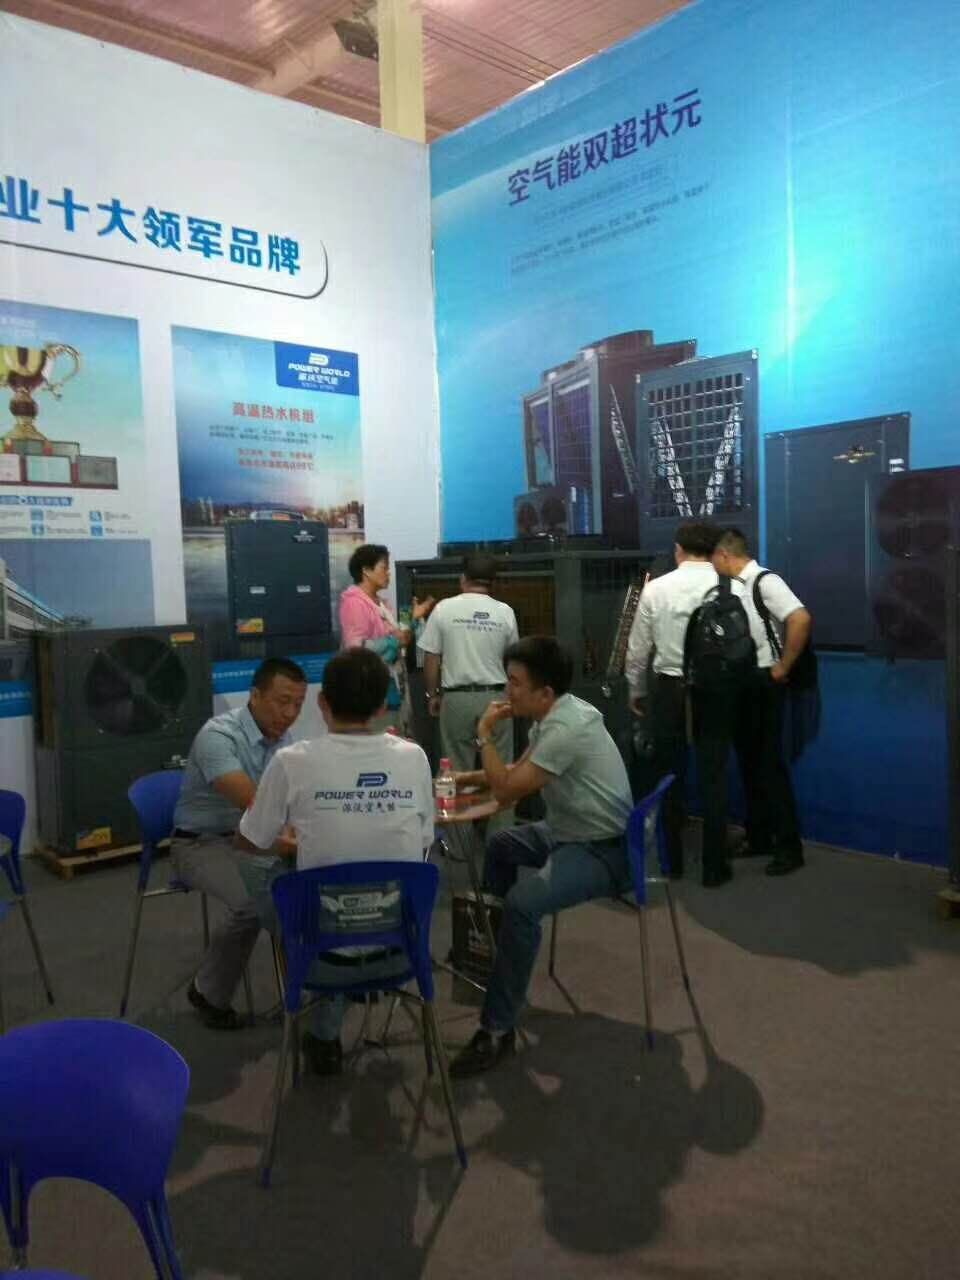 29th Of Aug We Are Going To Attend The One Belt And One Road Xinjiang Heating And Air Conditioner Heat Pump Expo In Changji Xinjiang With Images Heat Pump Heat Xinjiang